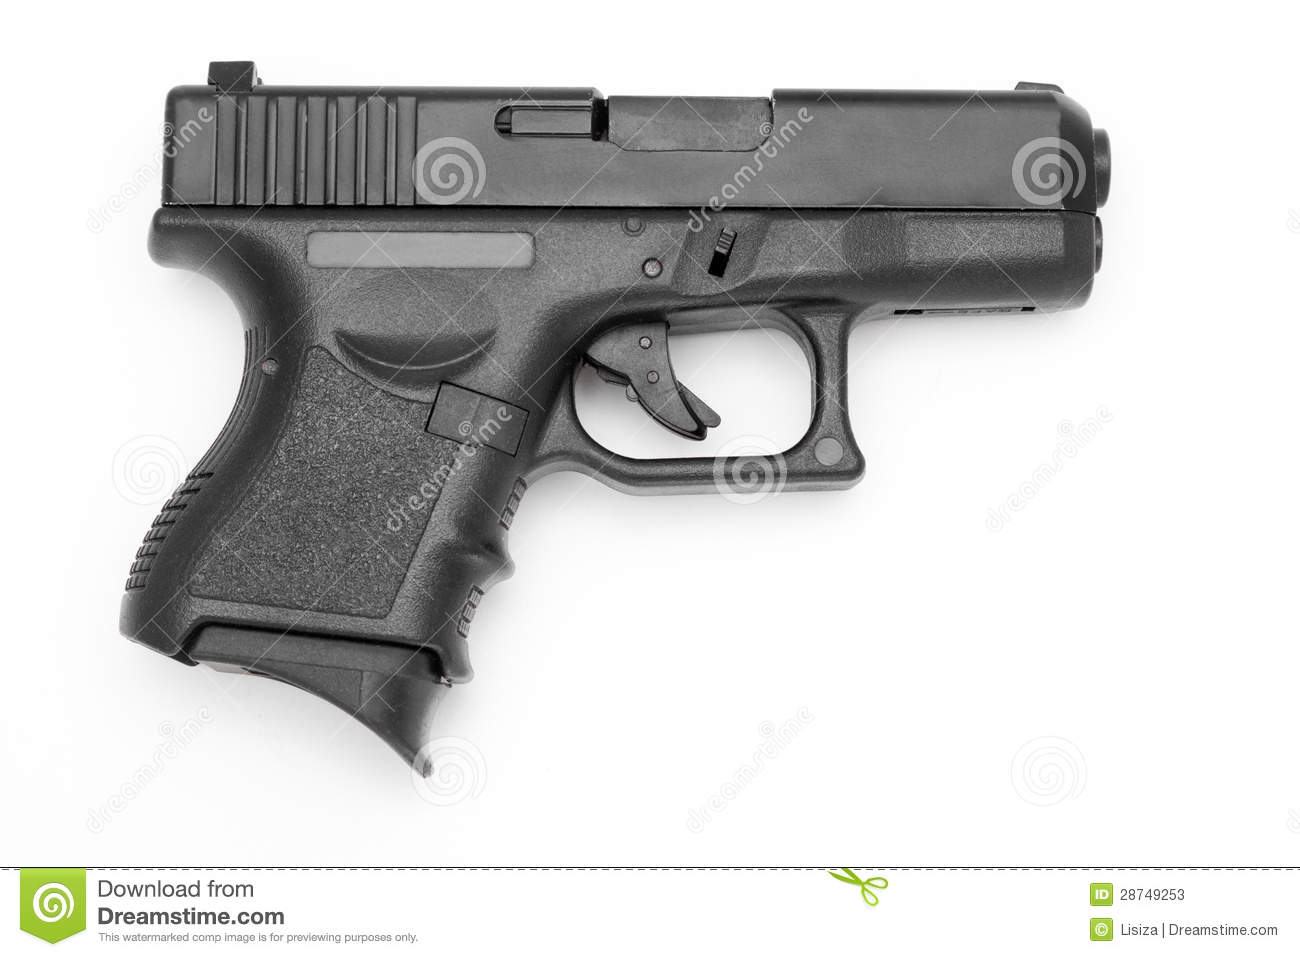 gun white background - photo #1